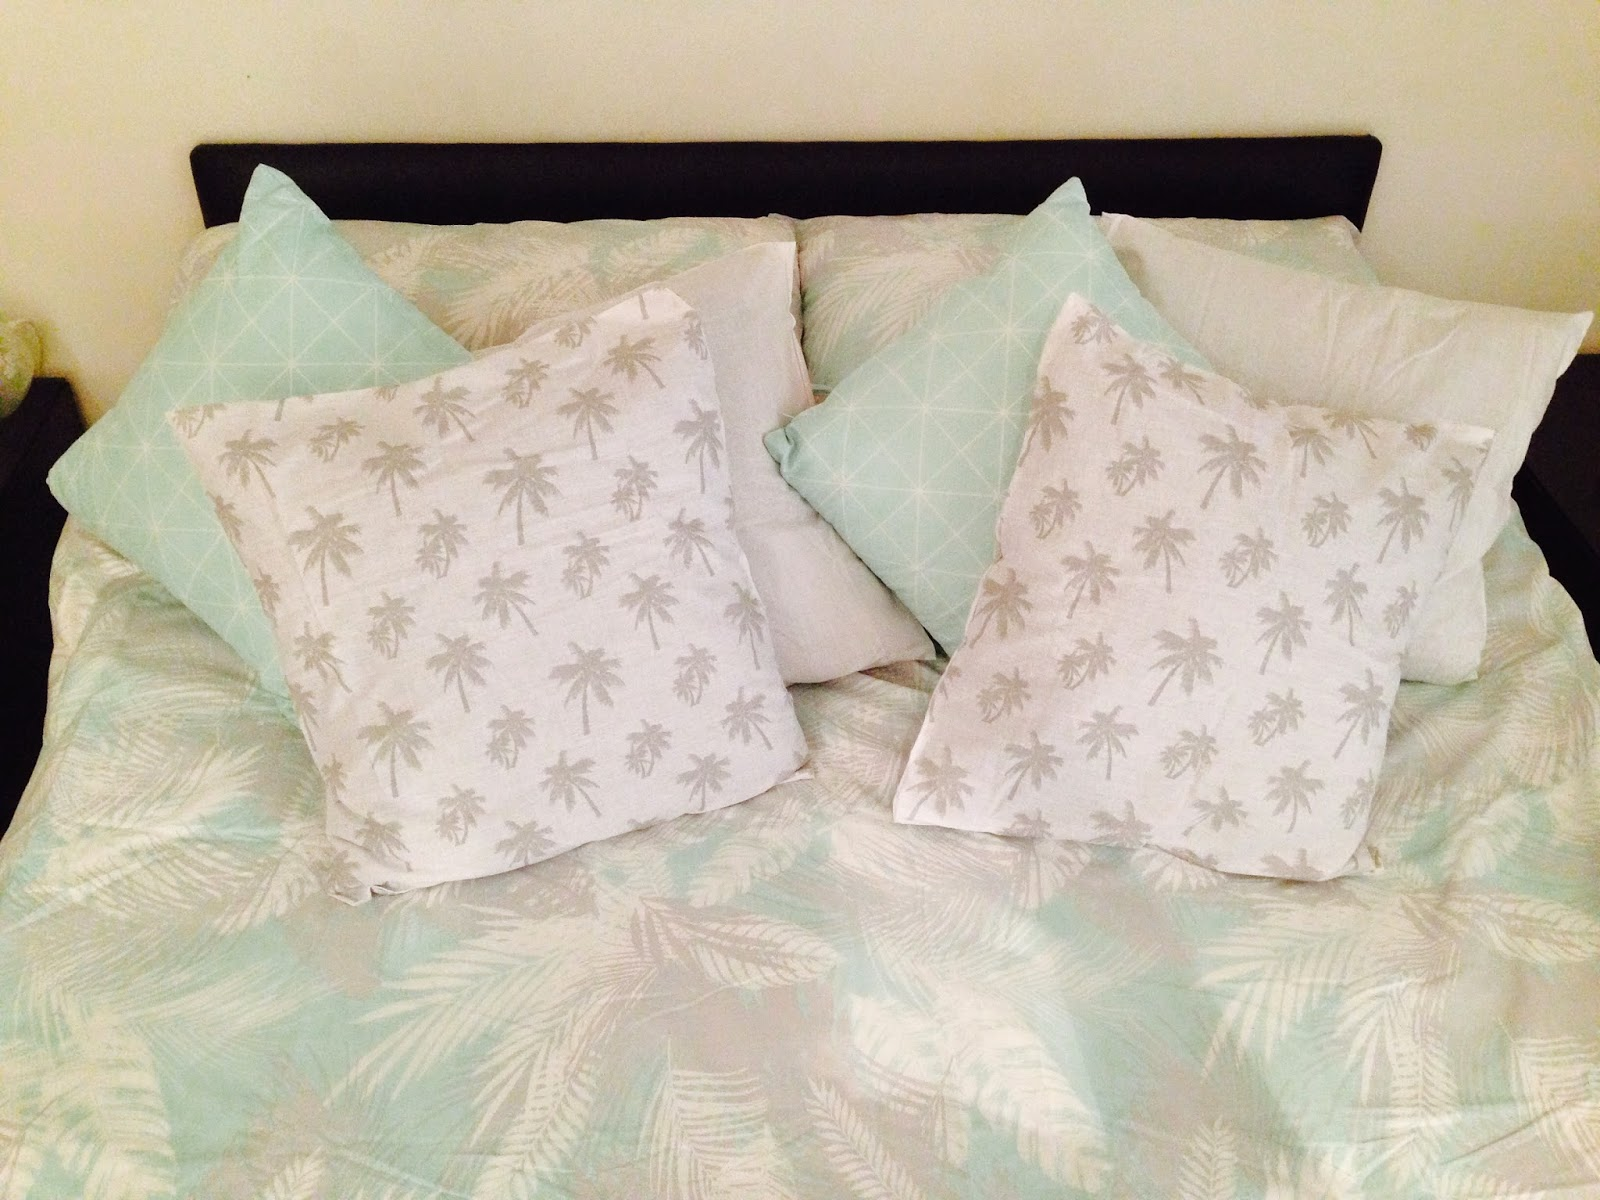 DIY cushion covers spring home decor